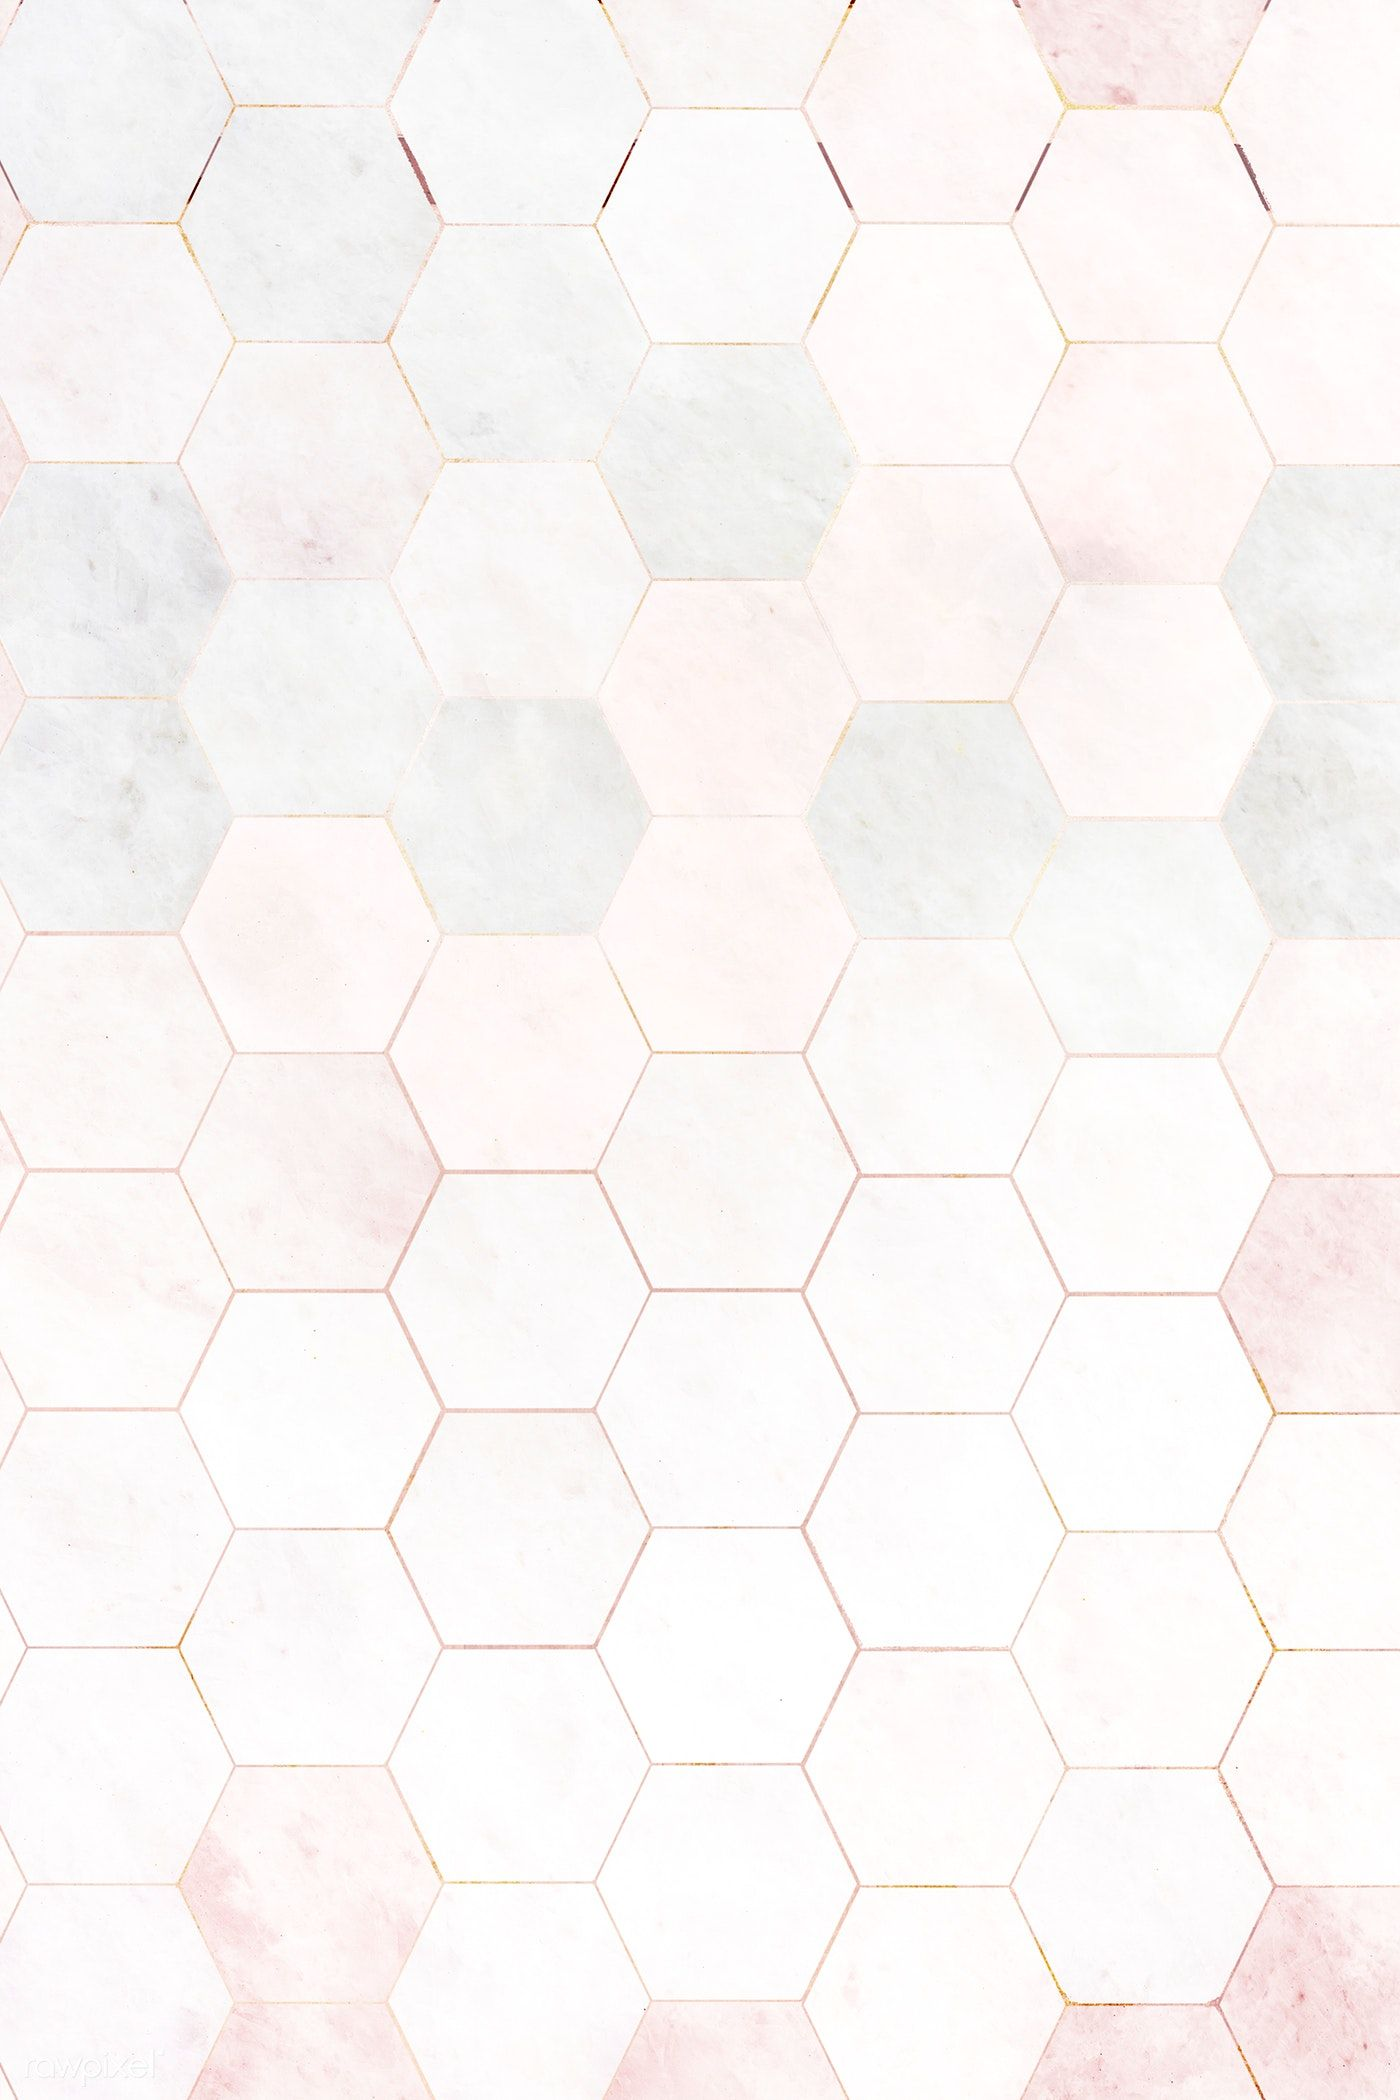 Hexagon Pink Marble Tiles Patterned Background Free Image